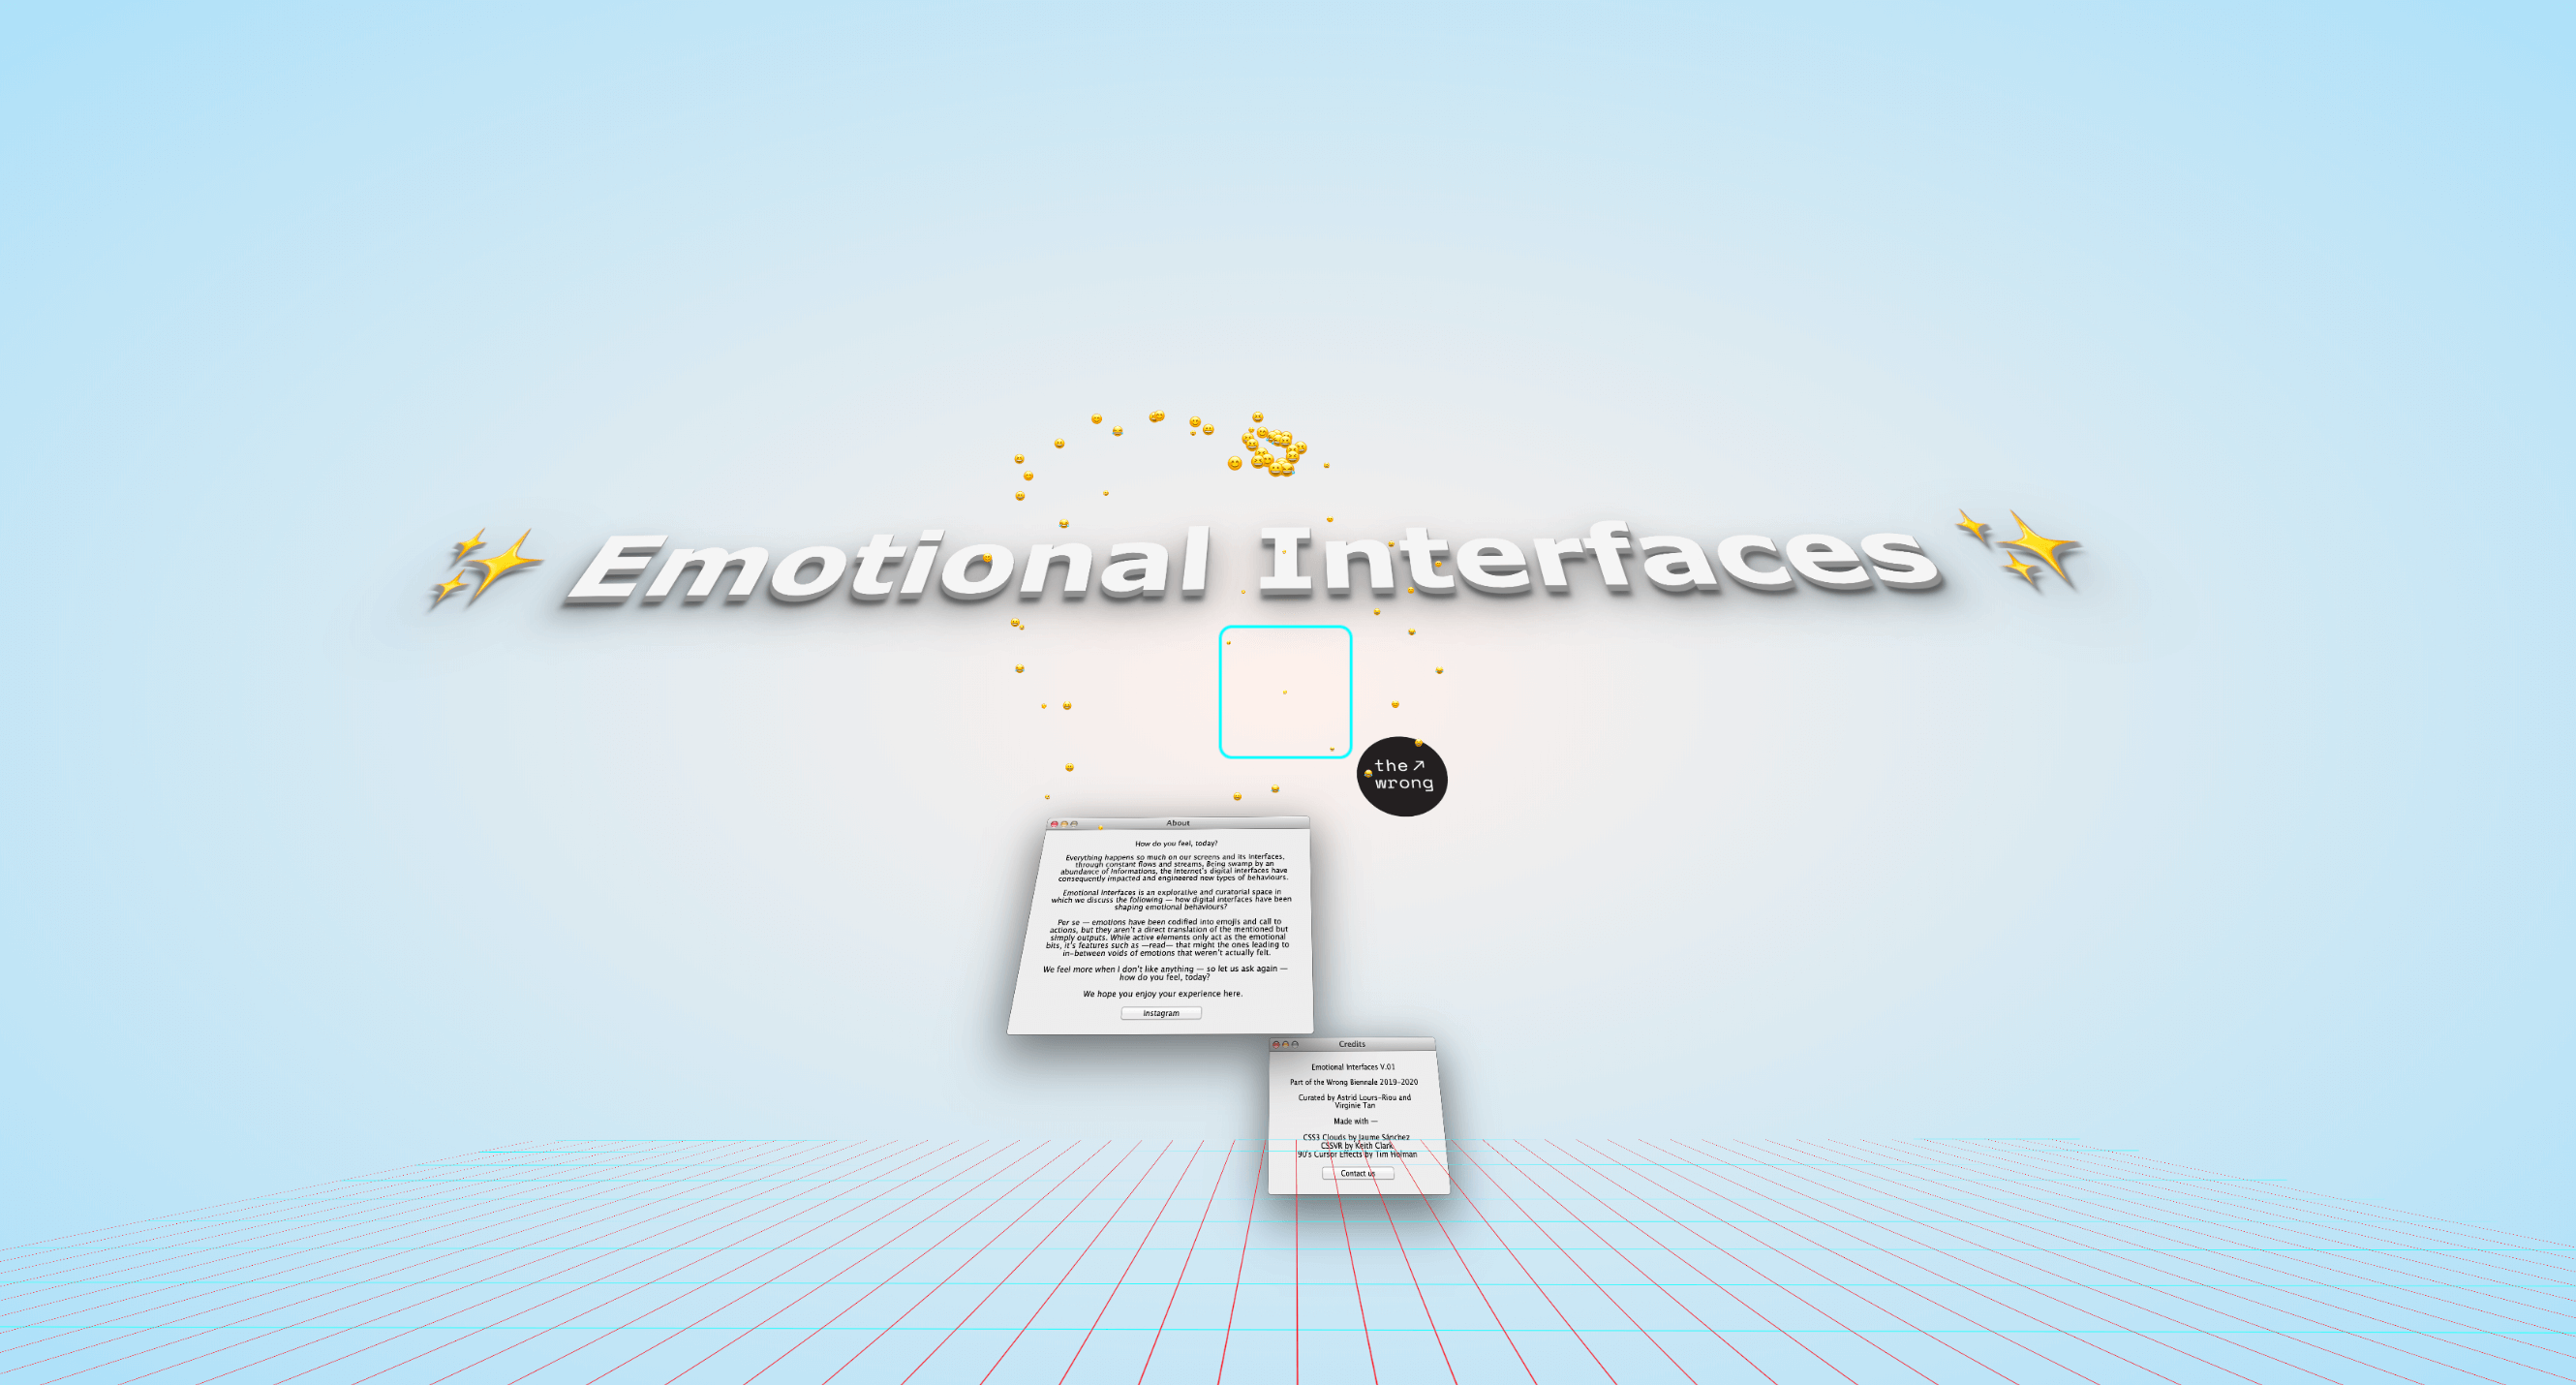 Emotional Interfaces' online exhibition